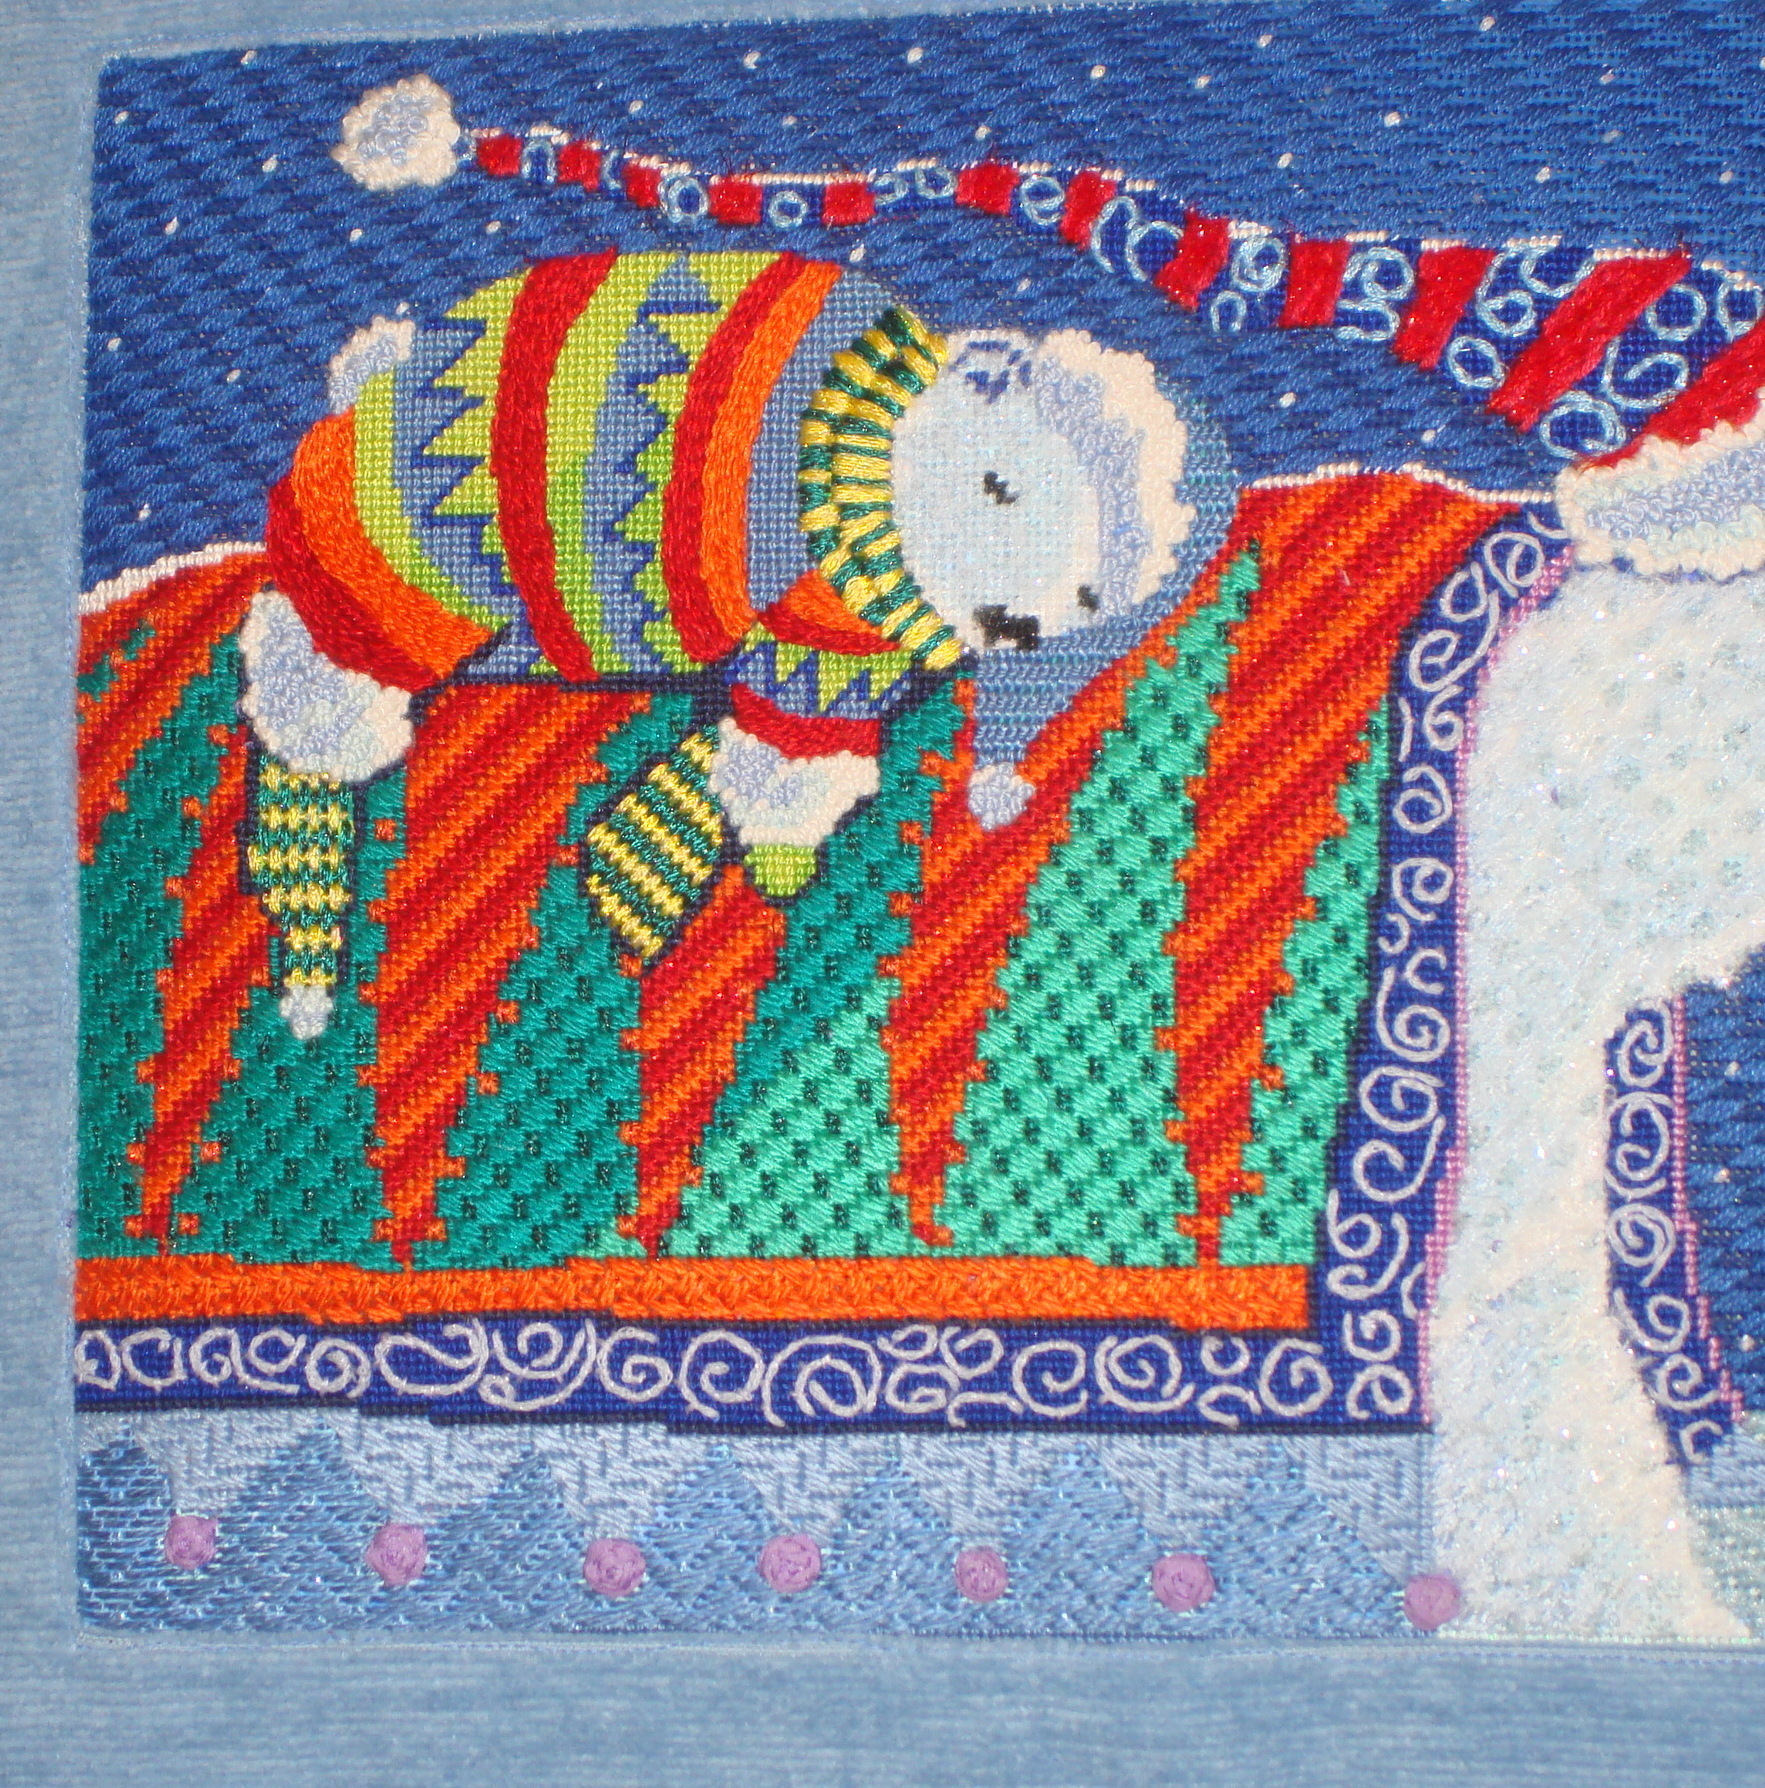 A Ride Home   (handpainted needlepoint canvas by Michele Noiset from CBK Needlepoint Collection)